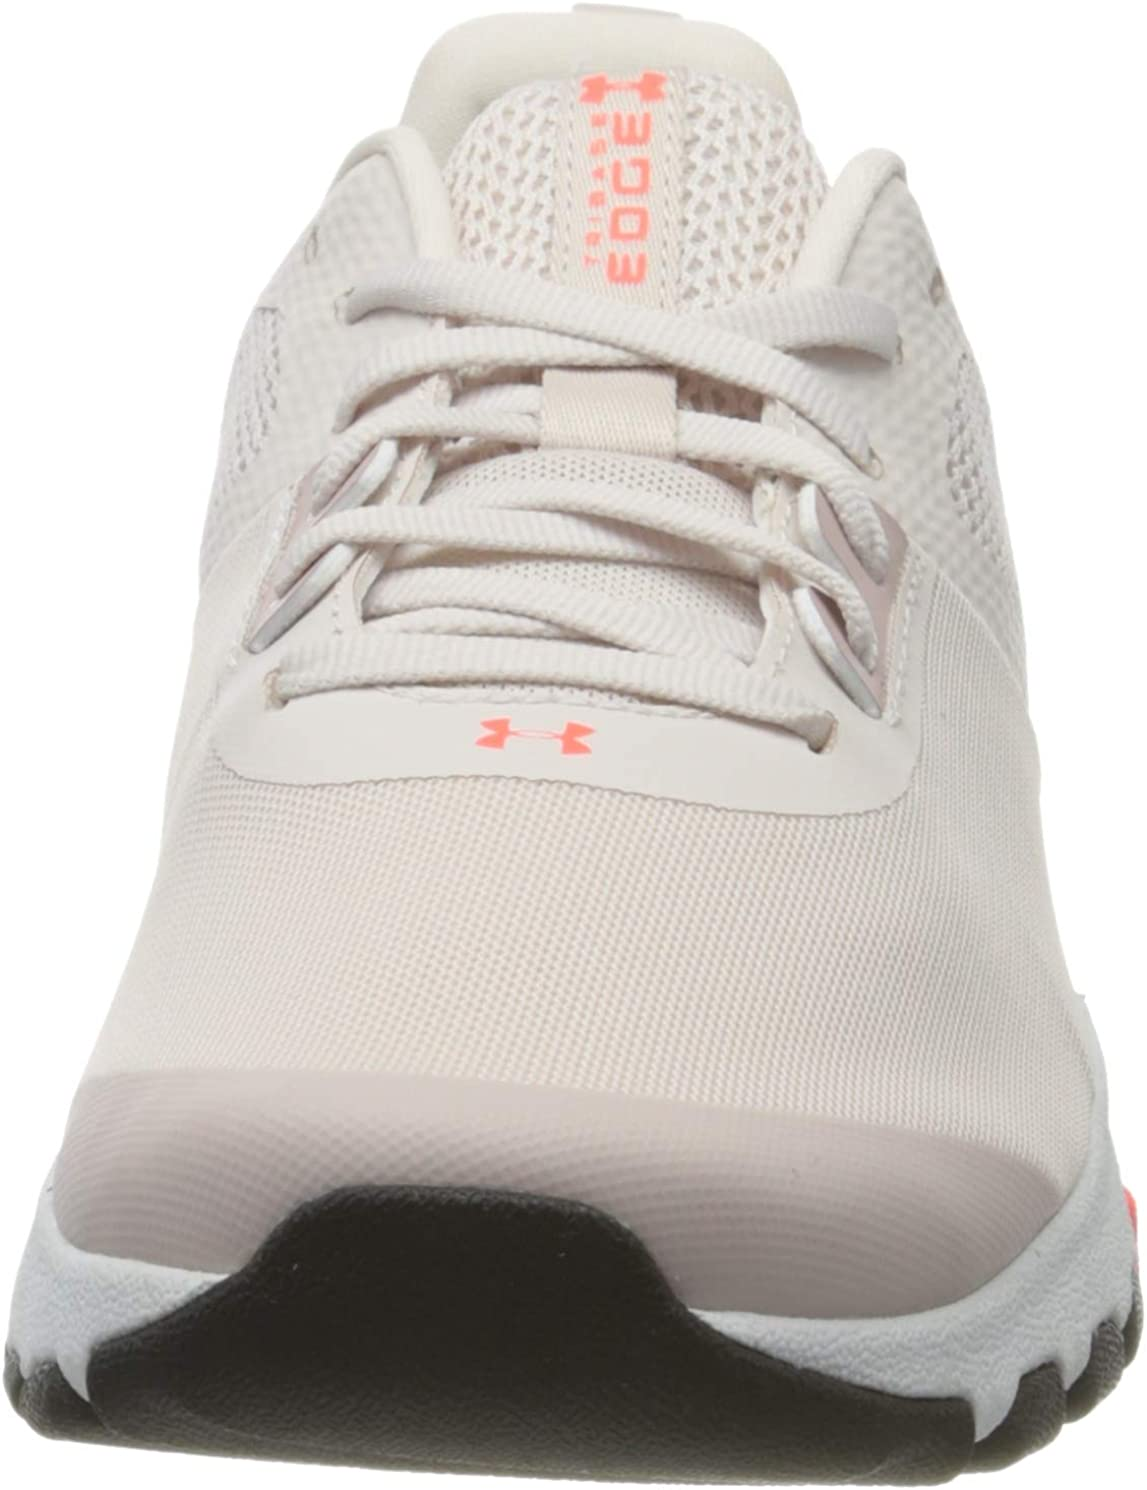 Under Armour Womens Tribase Edge Trainer Cross